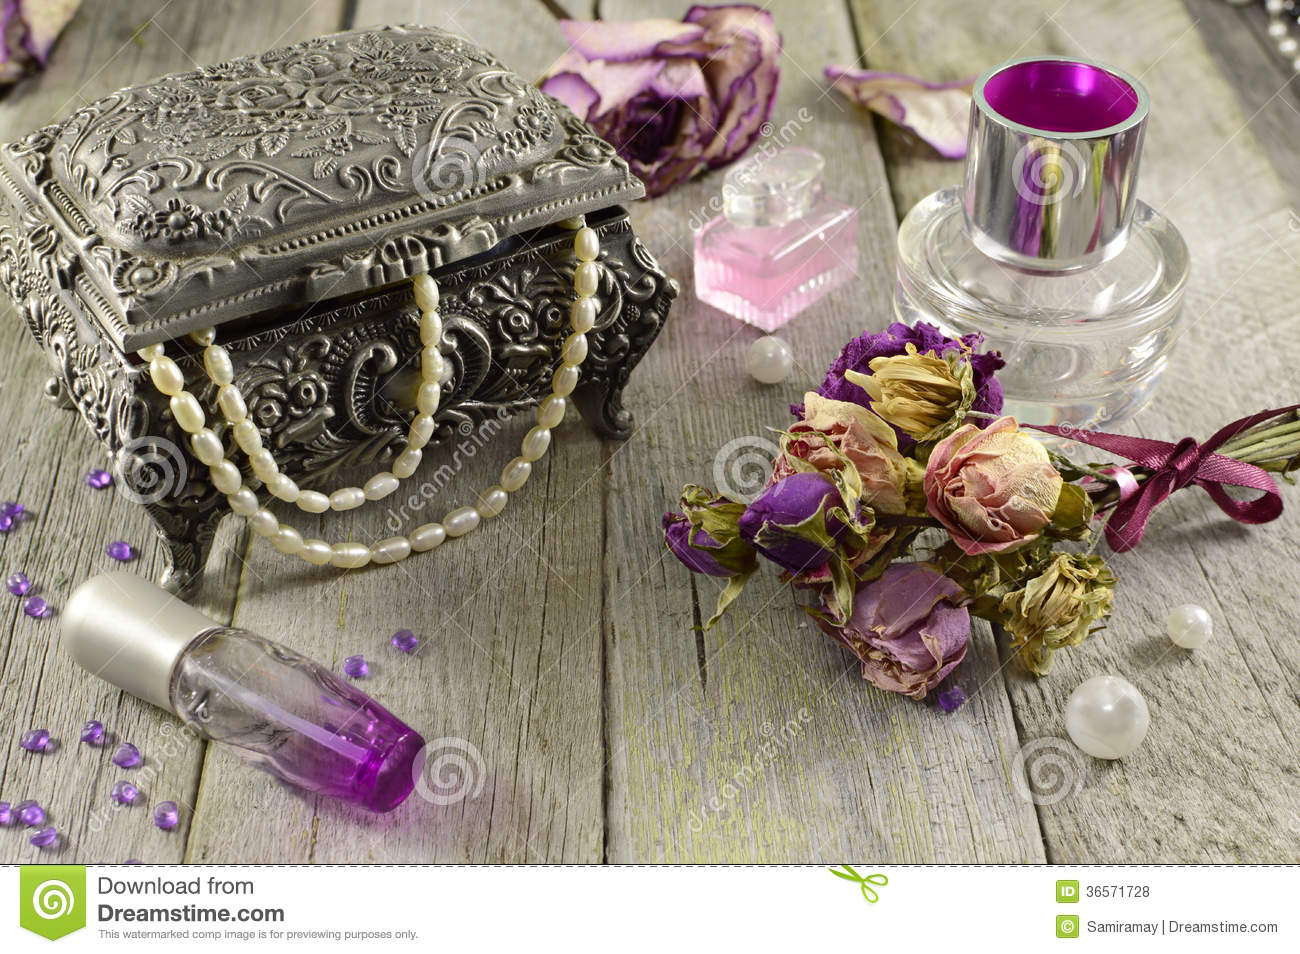 Download Vintage Still Life With Lilac Fragrances Stock Photo - Image of flowers, fragrance: 36571728